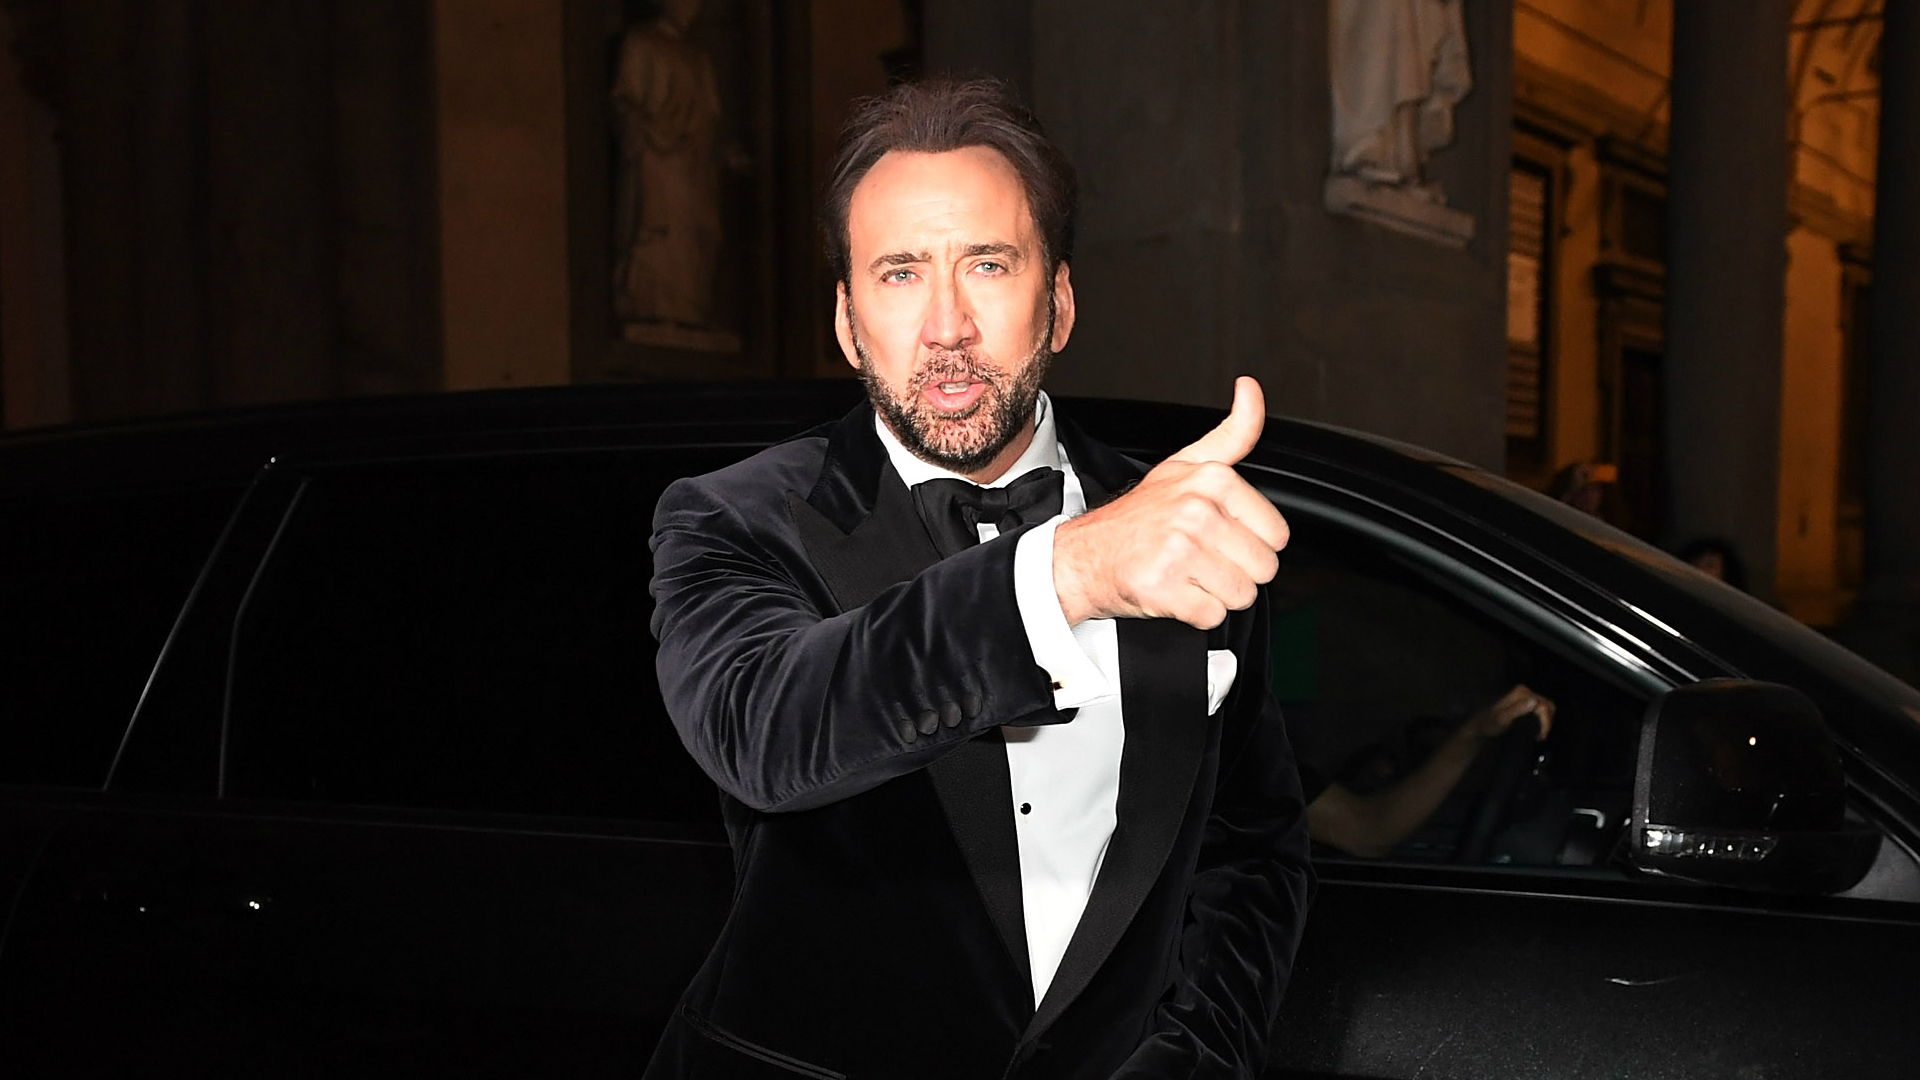 Nicolas Cage getting out of a car.